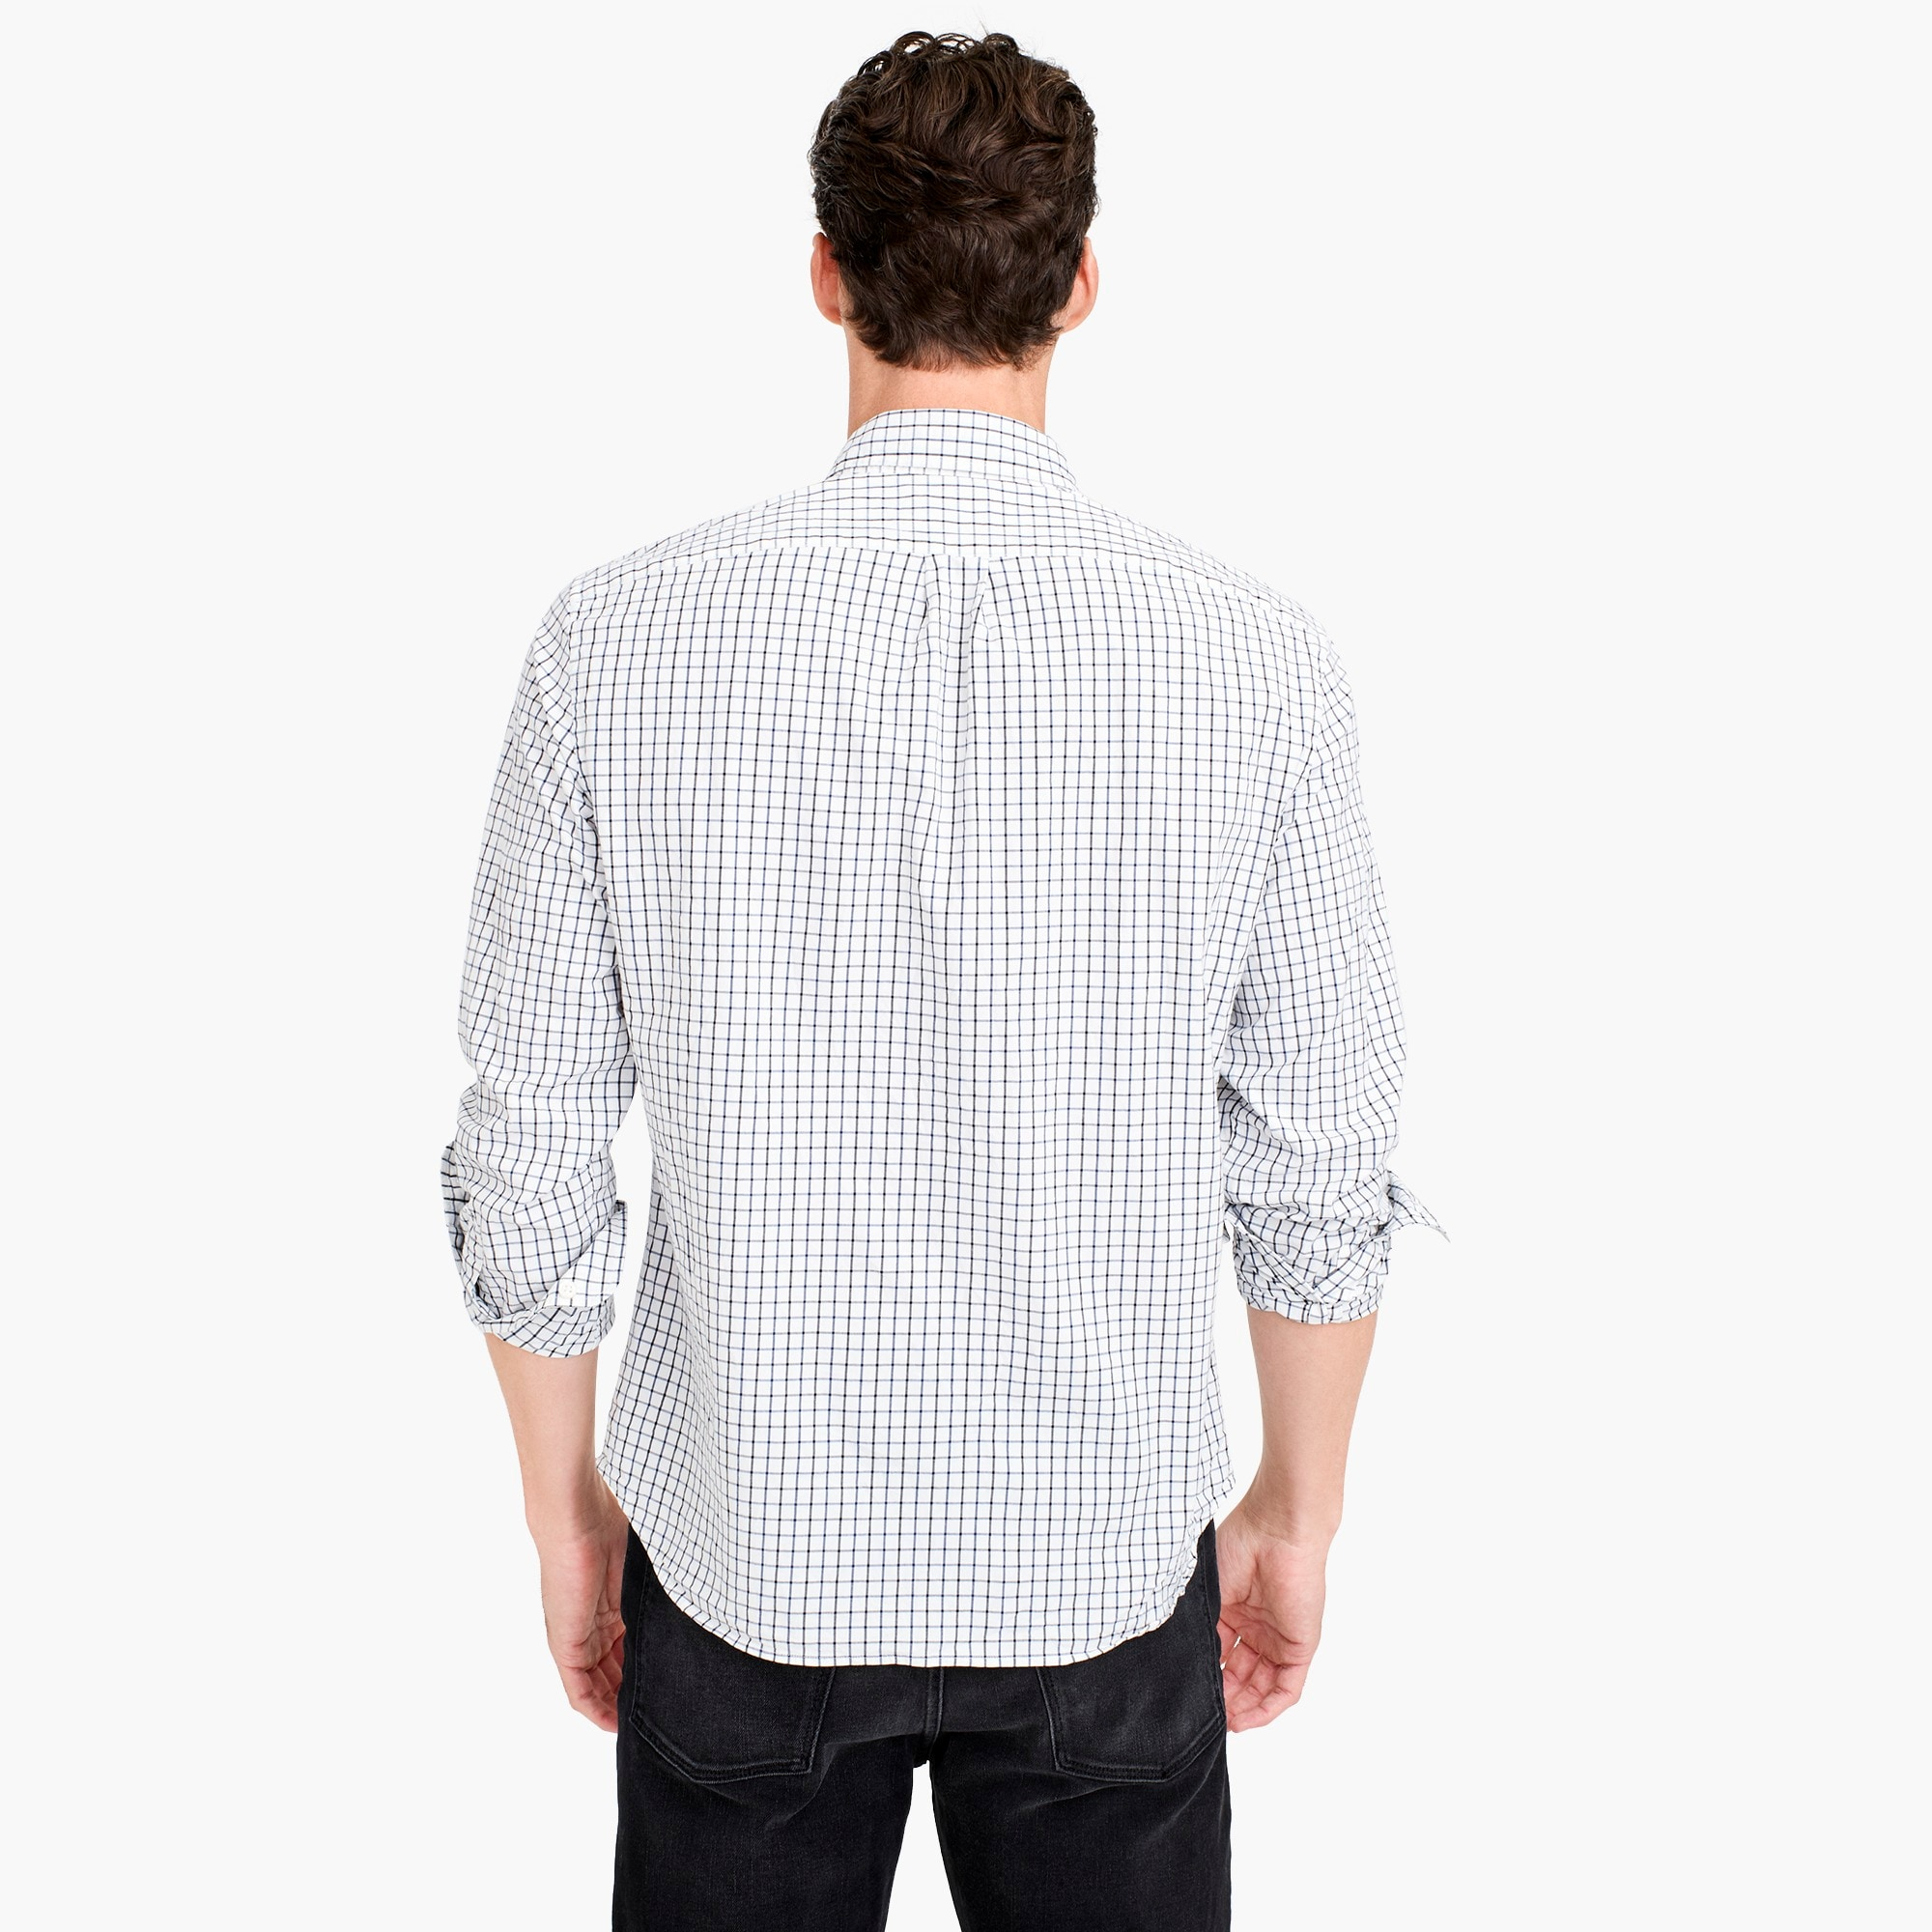 Untucked stretch Secret Wash shirt in tattersall